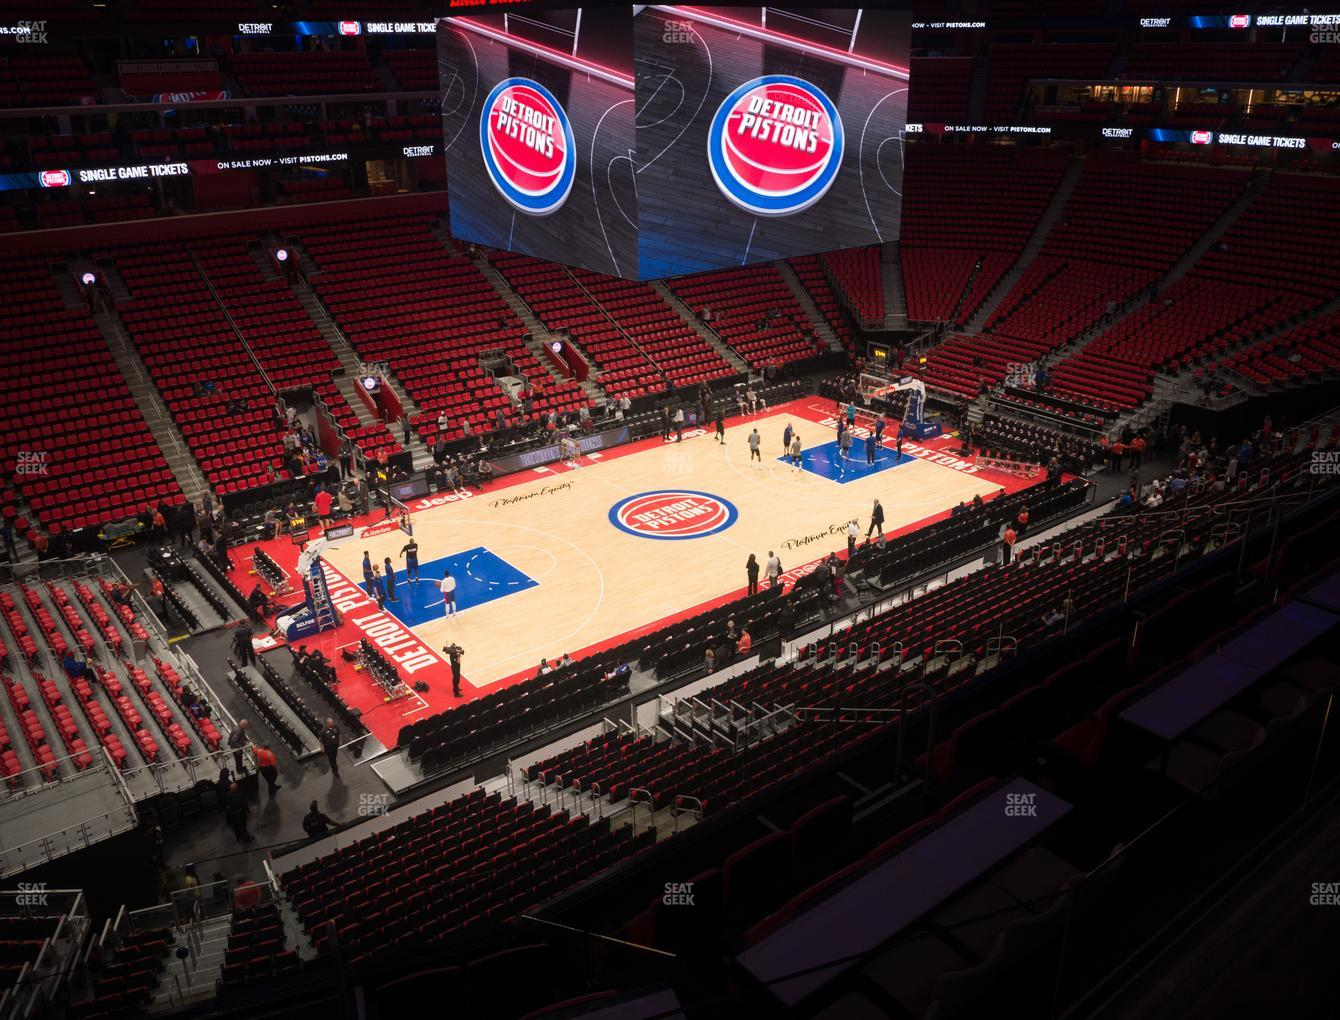 Detroit Pistons at Little Caesars Arena Mezzanine 14 H View